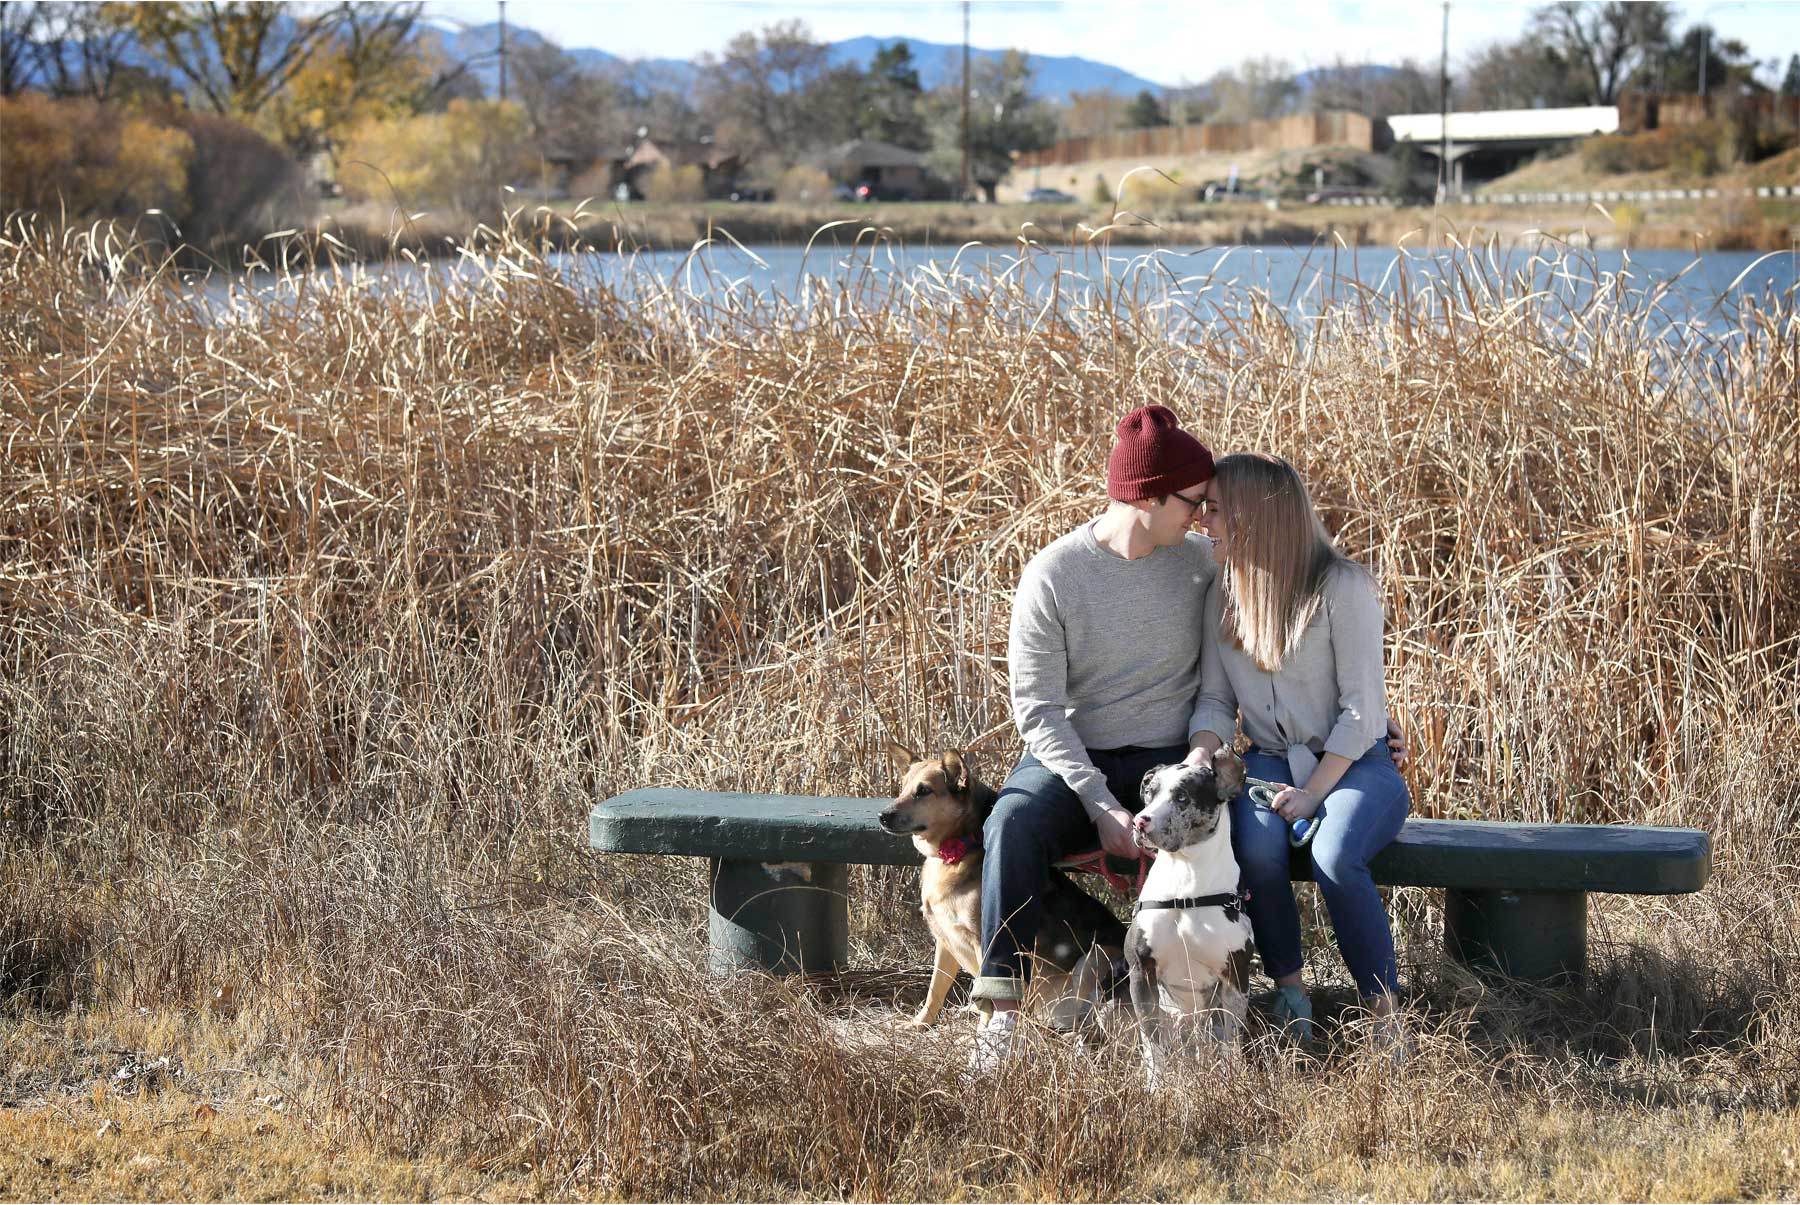 04-Vick-Photography-Fly-to-You-Engagement-Session-Denver-Colorado-Dog-Walk-Field-Danielle-and-Tom.jpg